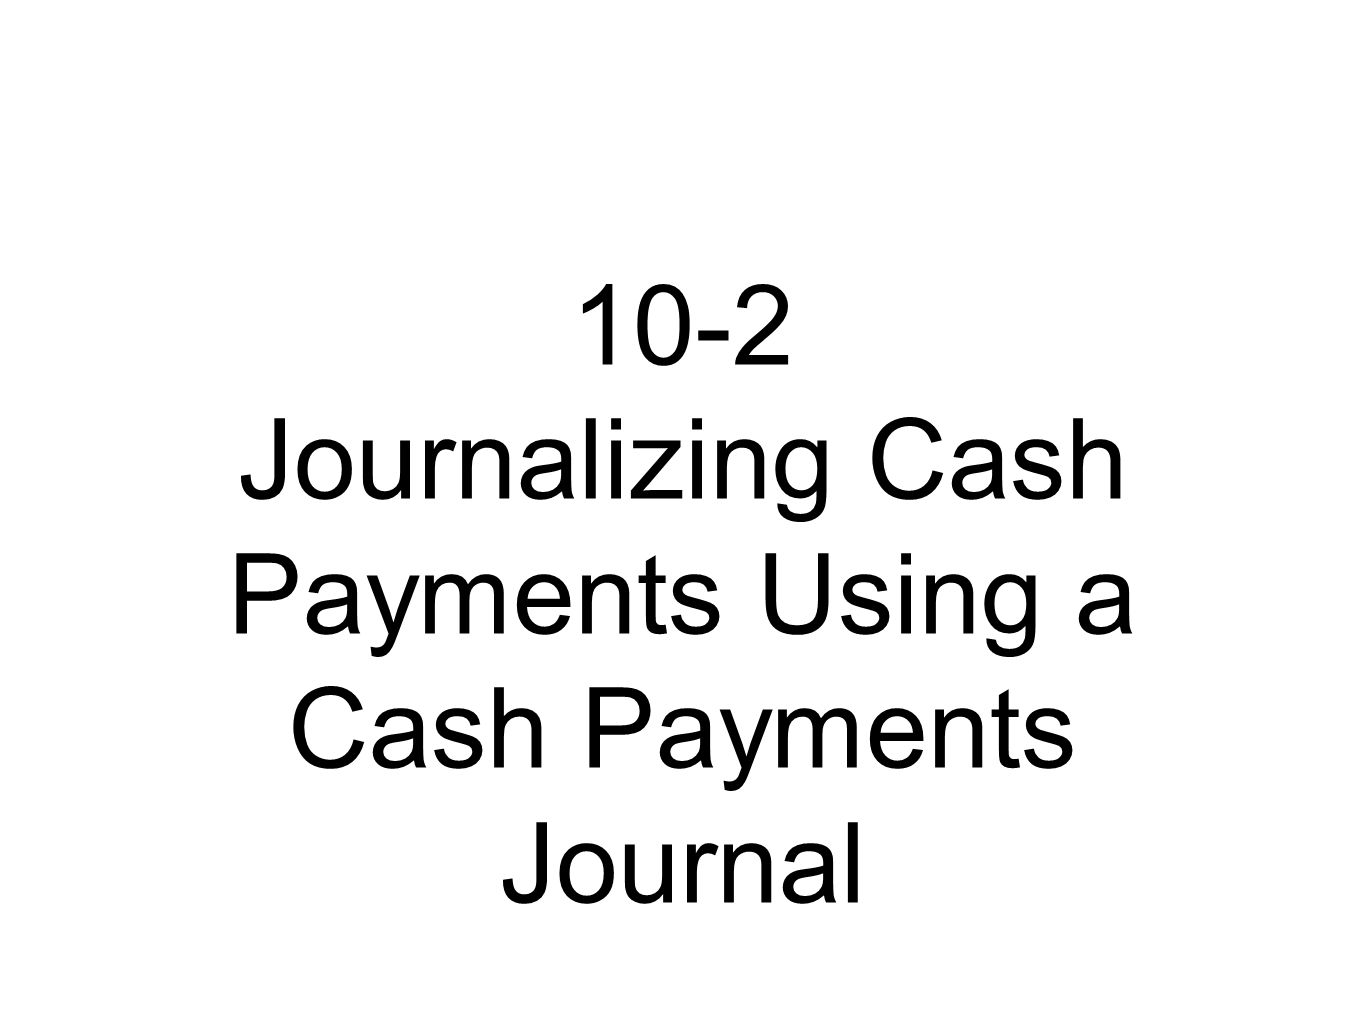 10-2 Journalizing Cash Payments Using a Cash Payments Journal